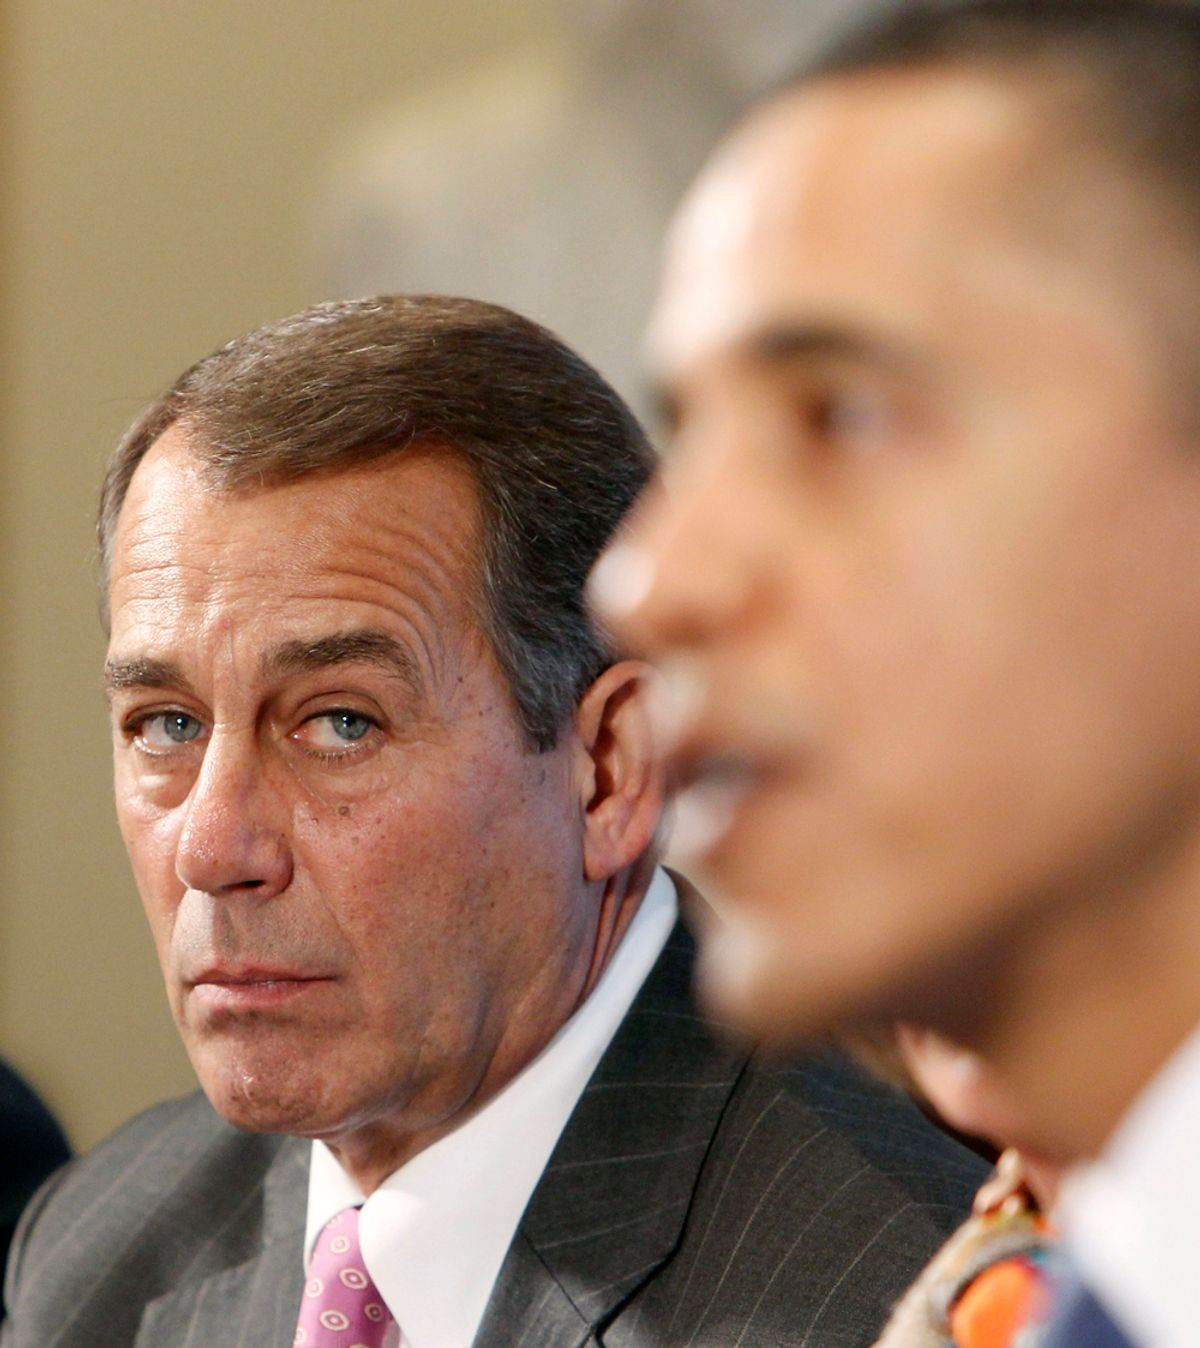 House Minority Leader John Boehner (L) listens to U.S. President Barack Obama talk with bipartisan leaders of the House and the Senate about the economy in the Cabinet Room of the White House in Washington, February 9, 2010.    REUTERS/Larry Downing  (UNITED STATES - Tags: POLITICS)   (© Larry Downing / Reuters)